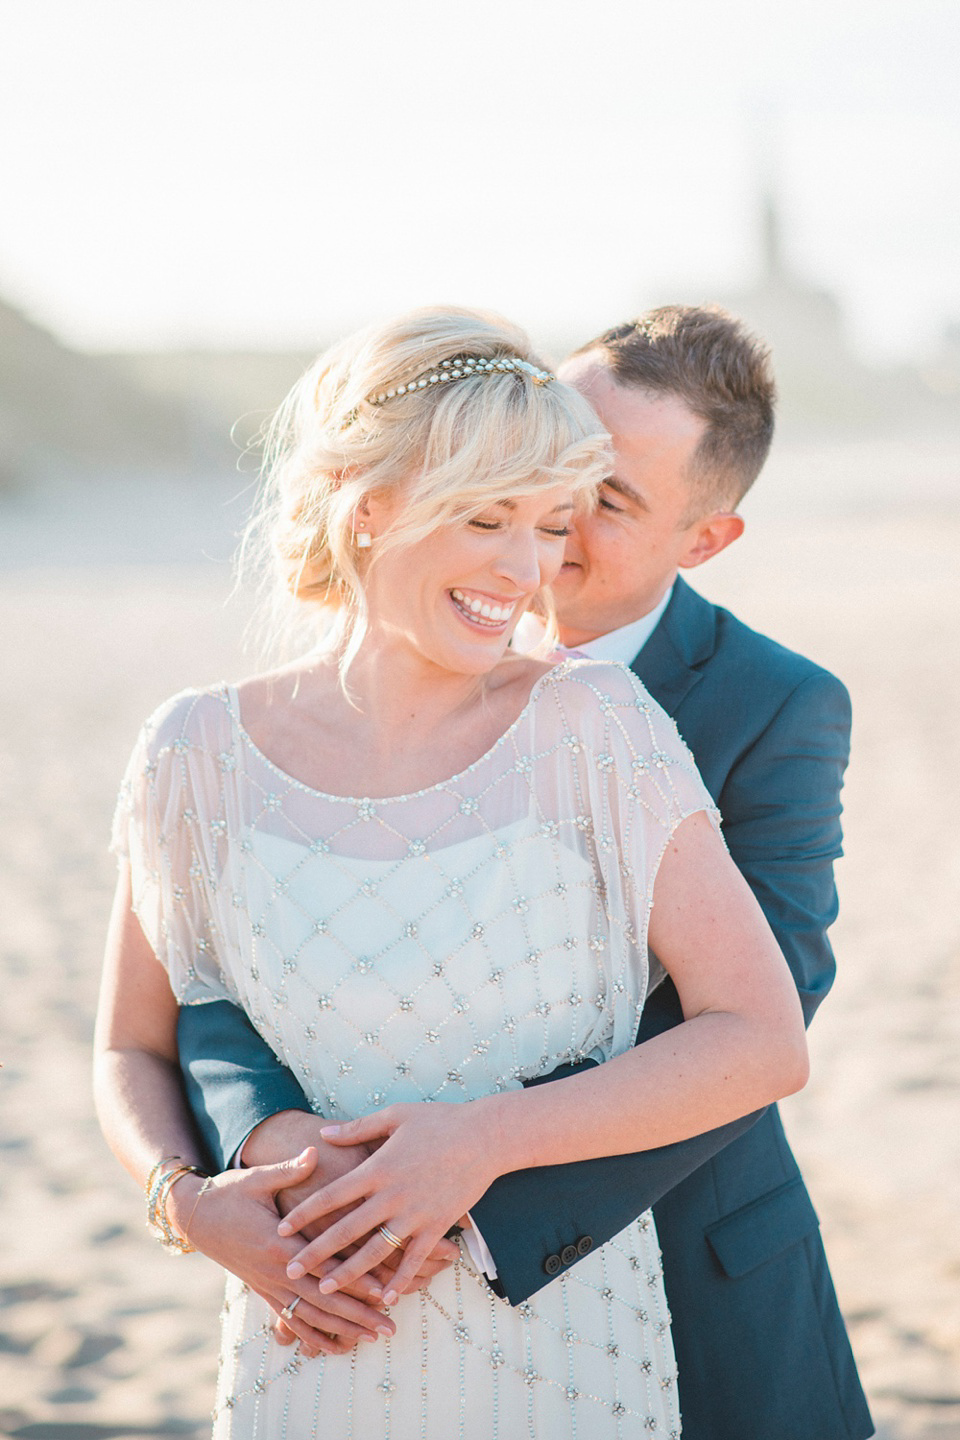 Jenny Packham for a Beachside, Bali Inspired Wedding